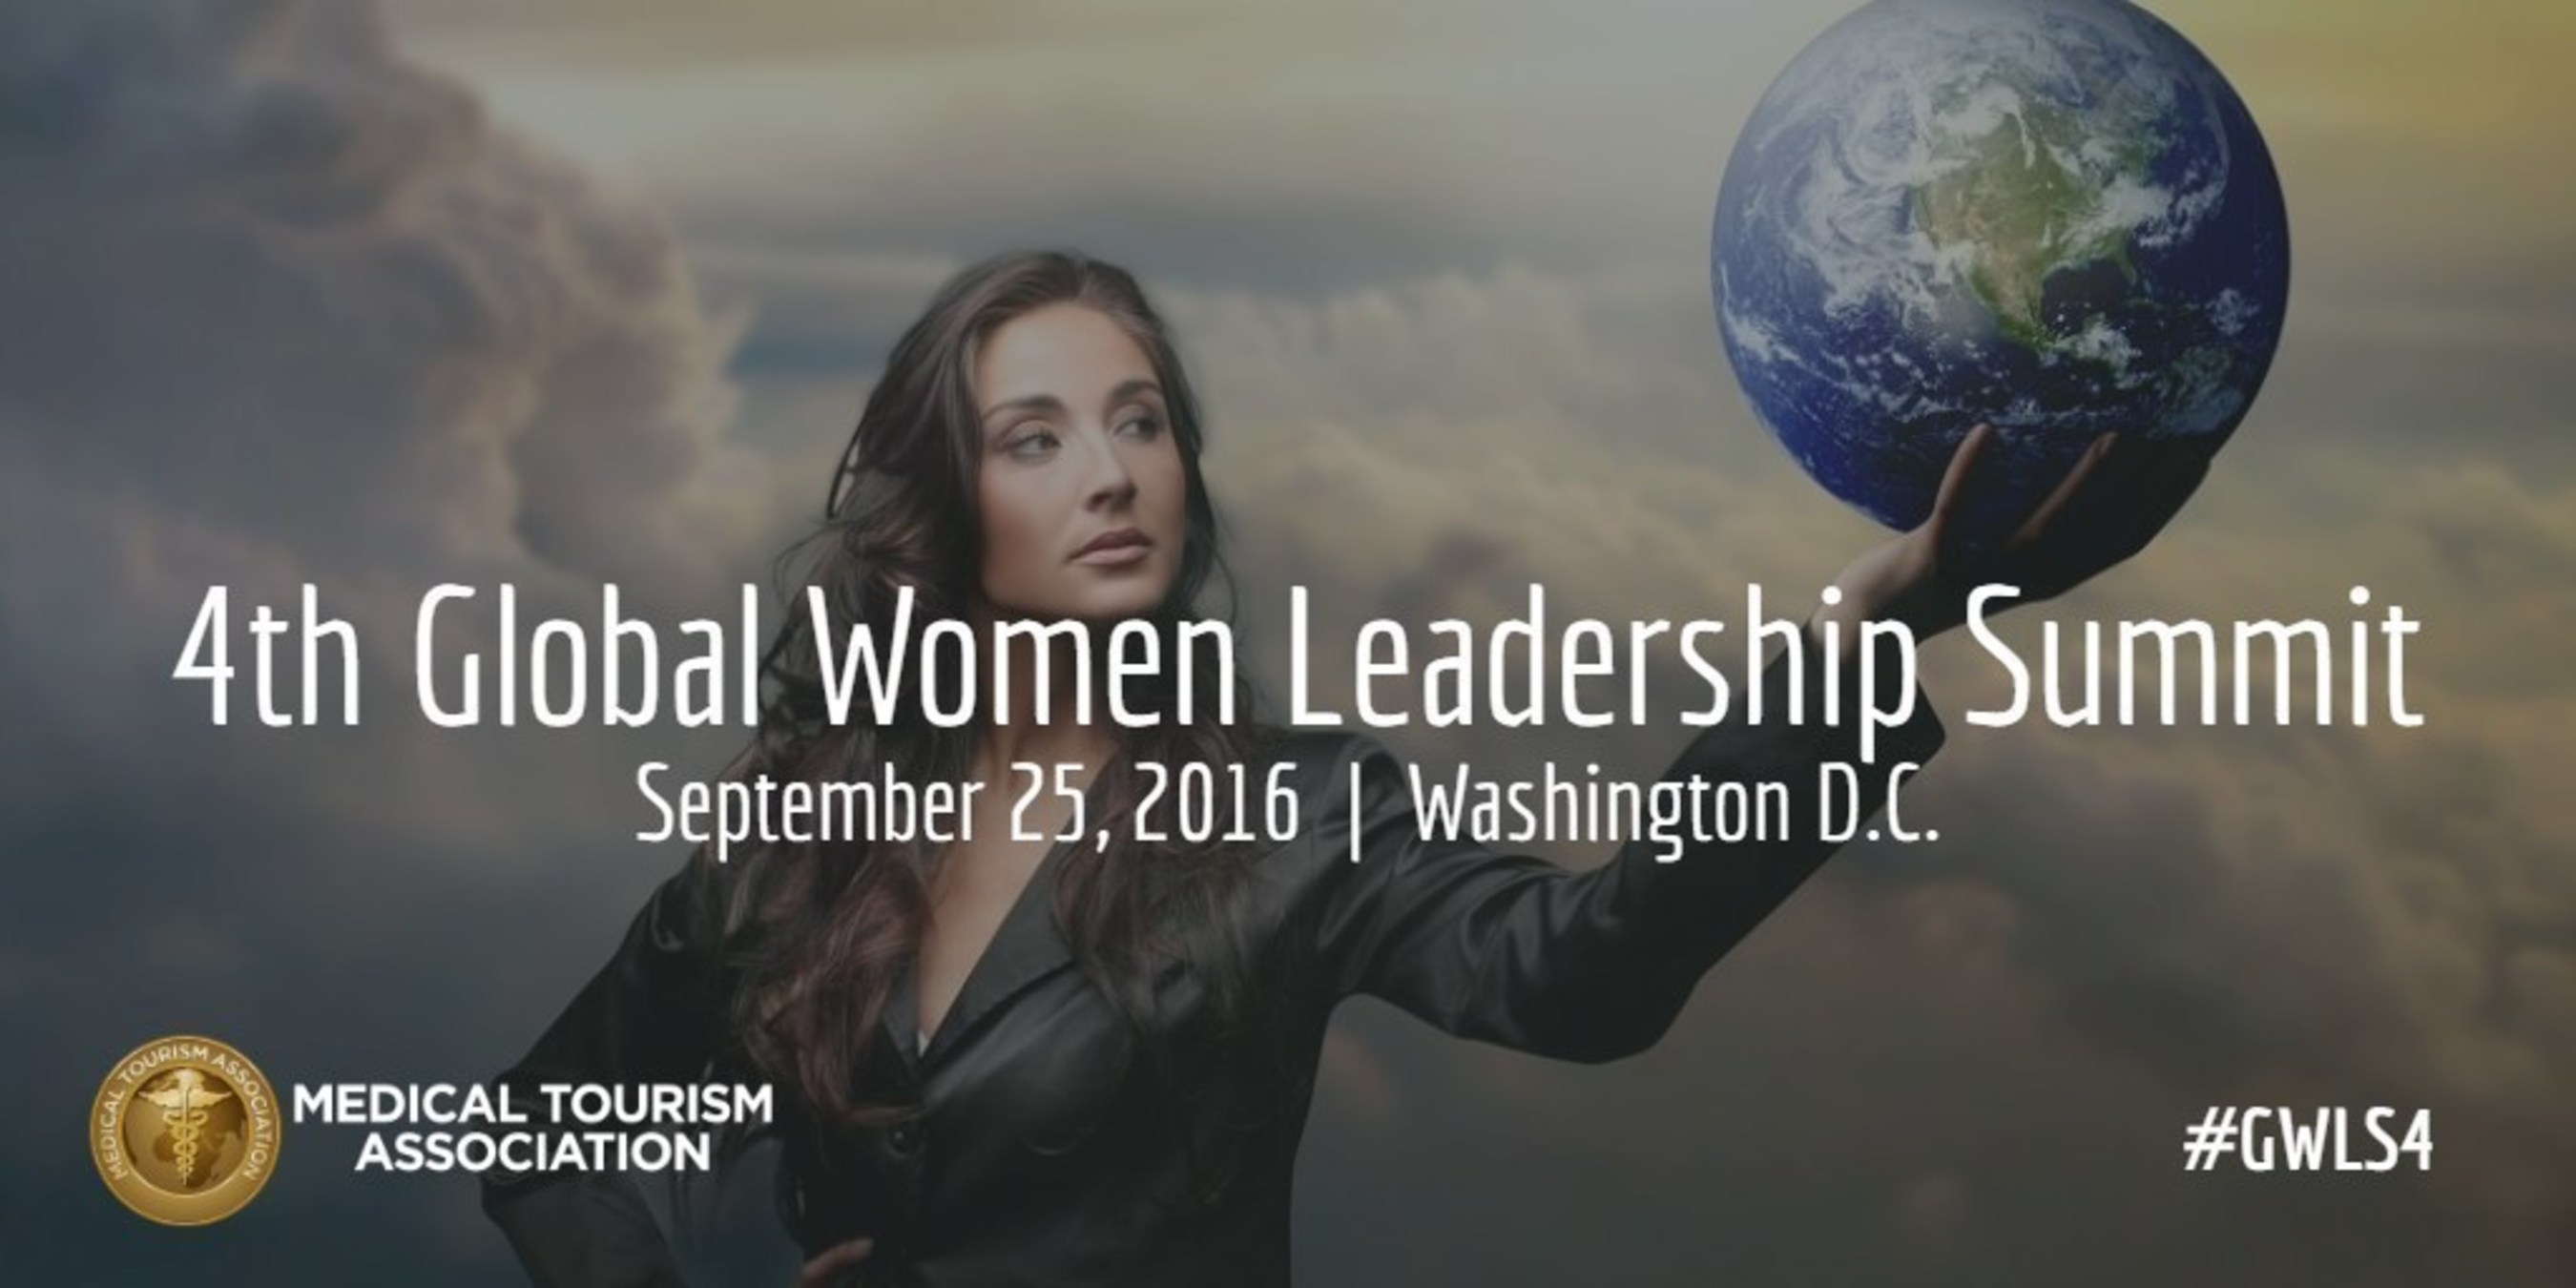 The 4th Global Women's Leadership Summit is set to take place in Washington, D. C. this September 25, 2016.